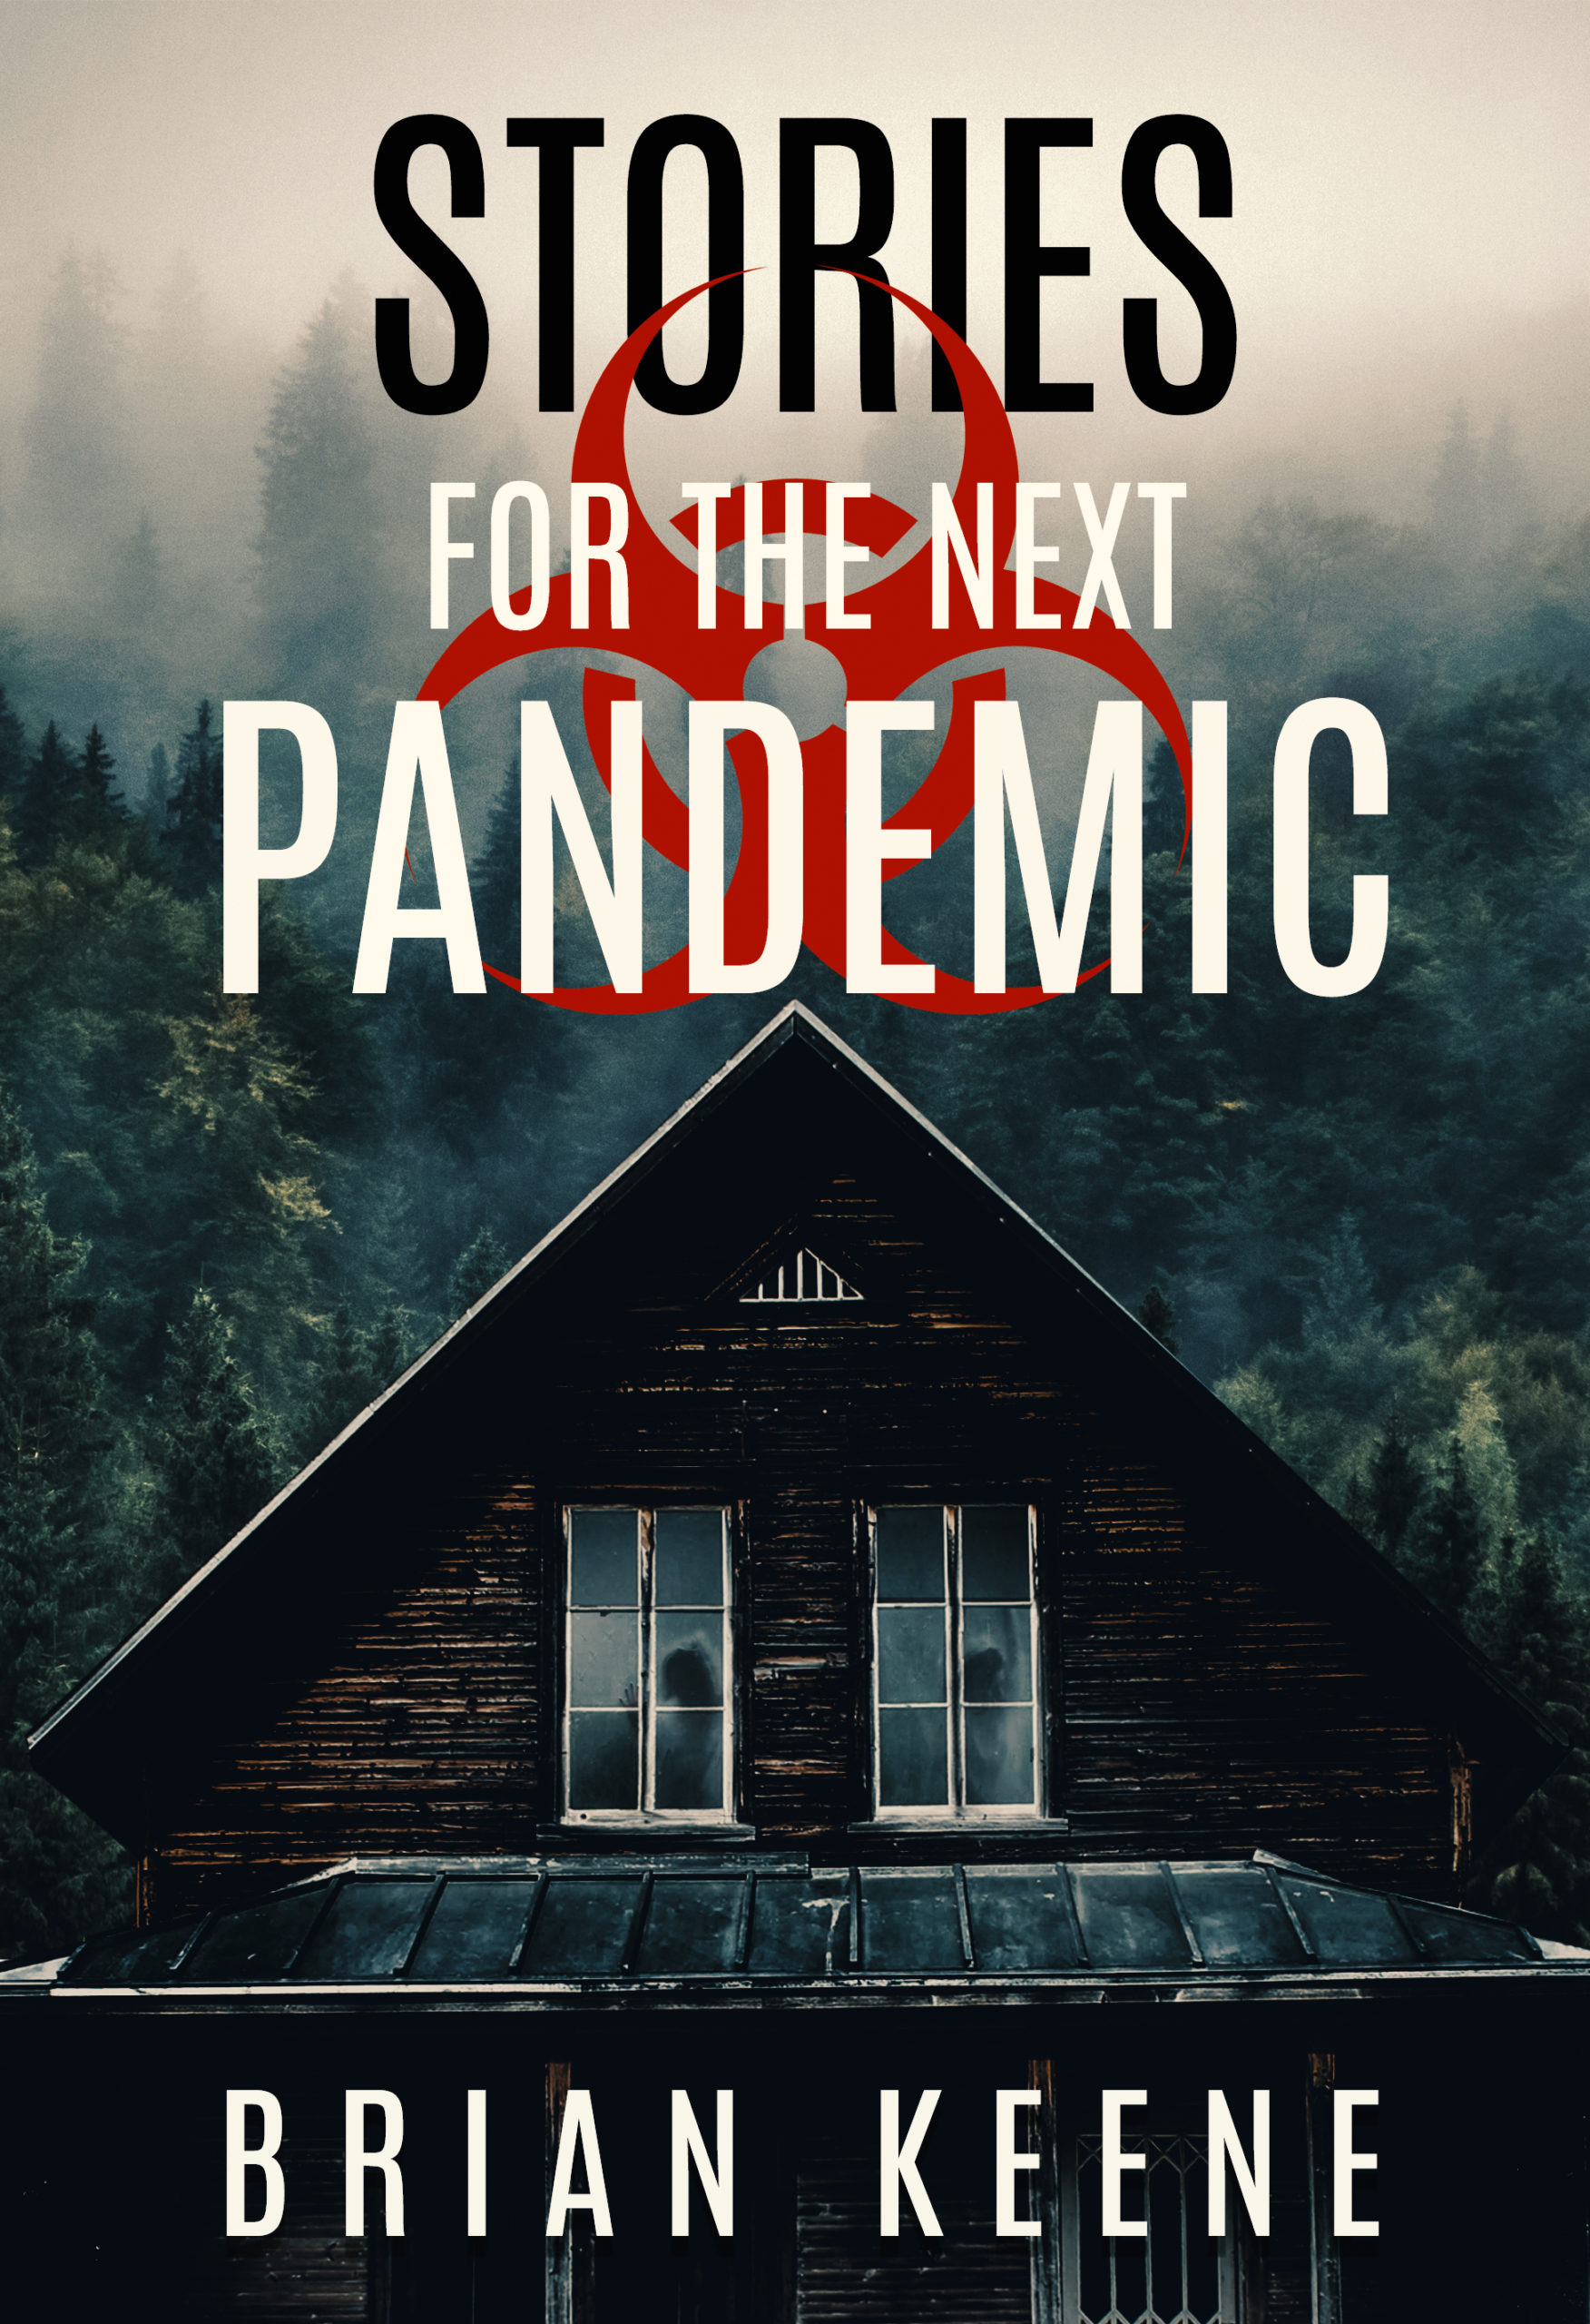 Stories for the Next Pandemic